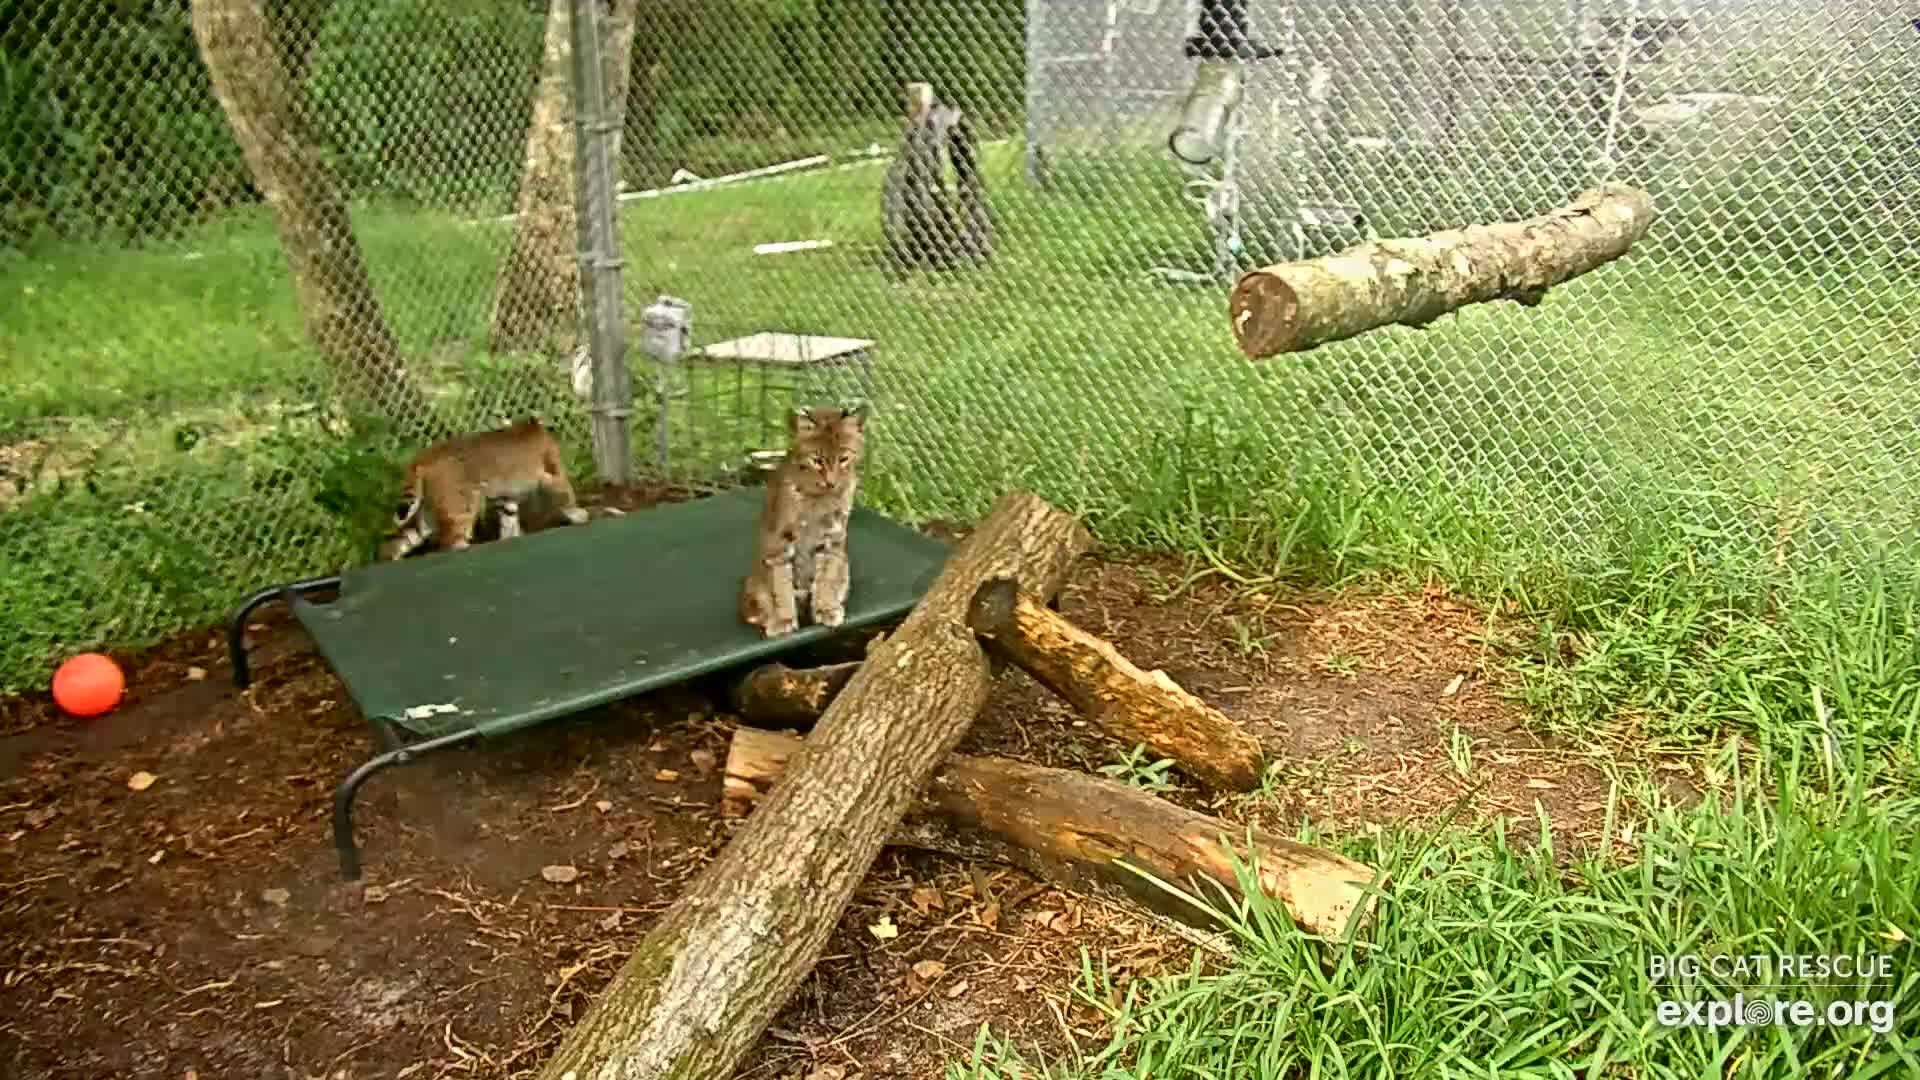 I M Watching The Big Cat Rescue Cam Streaming Live On Explore Org Big Cat Rescue Snapshots Namjoon